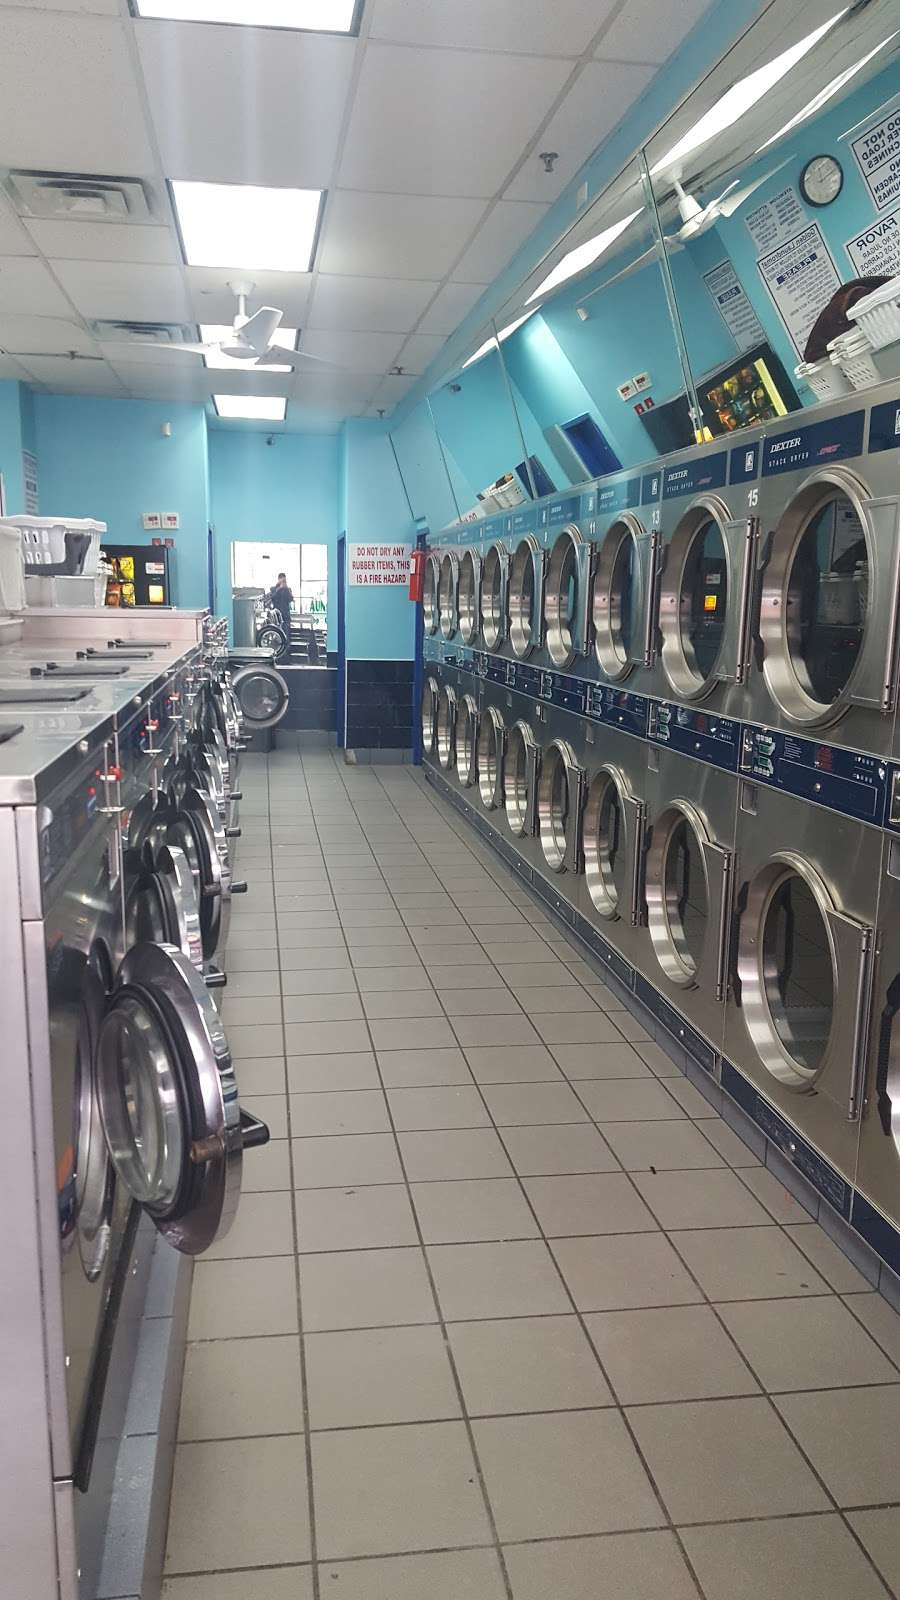 Golden Laundromat - laundry  | Photo 3 of 4 | Address: 1615 Dr Martin Luther King Jr Blvd, Bronx, NY 10453, USA | Phone: (718) 618-0234